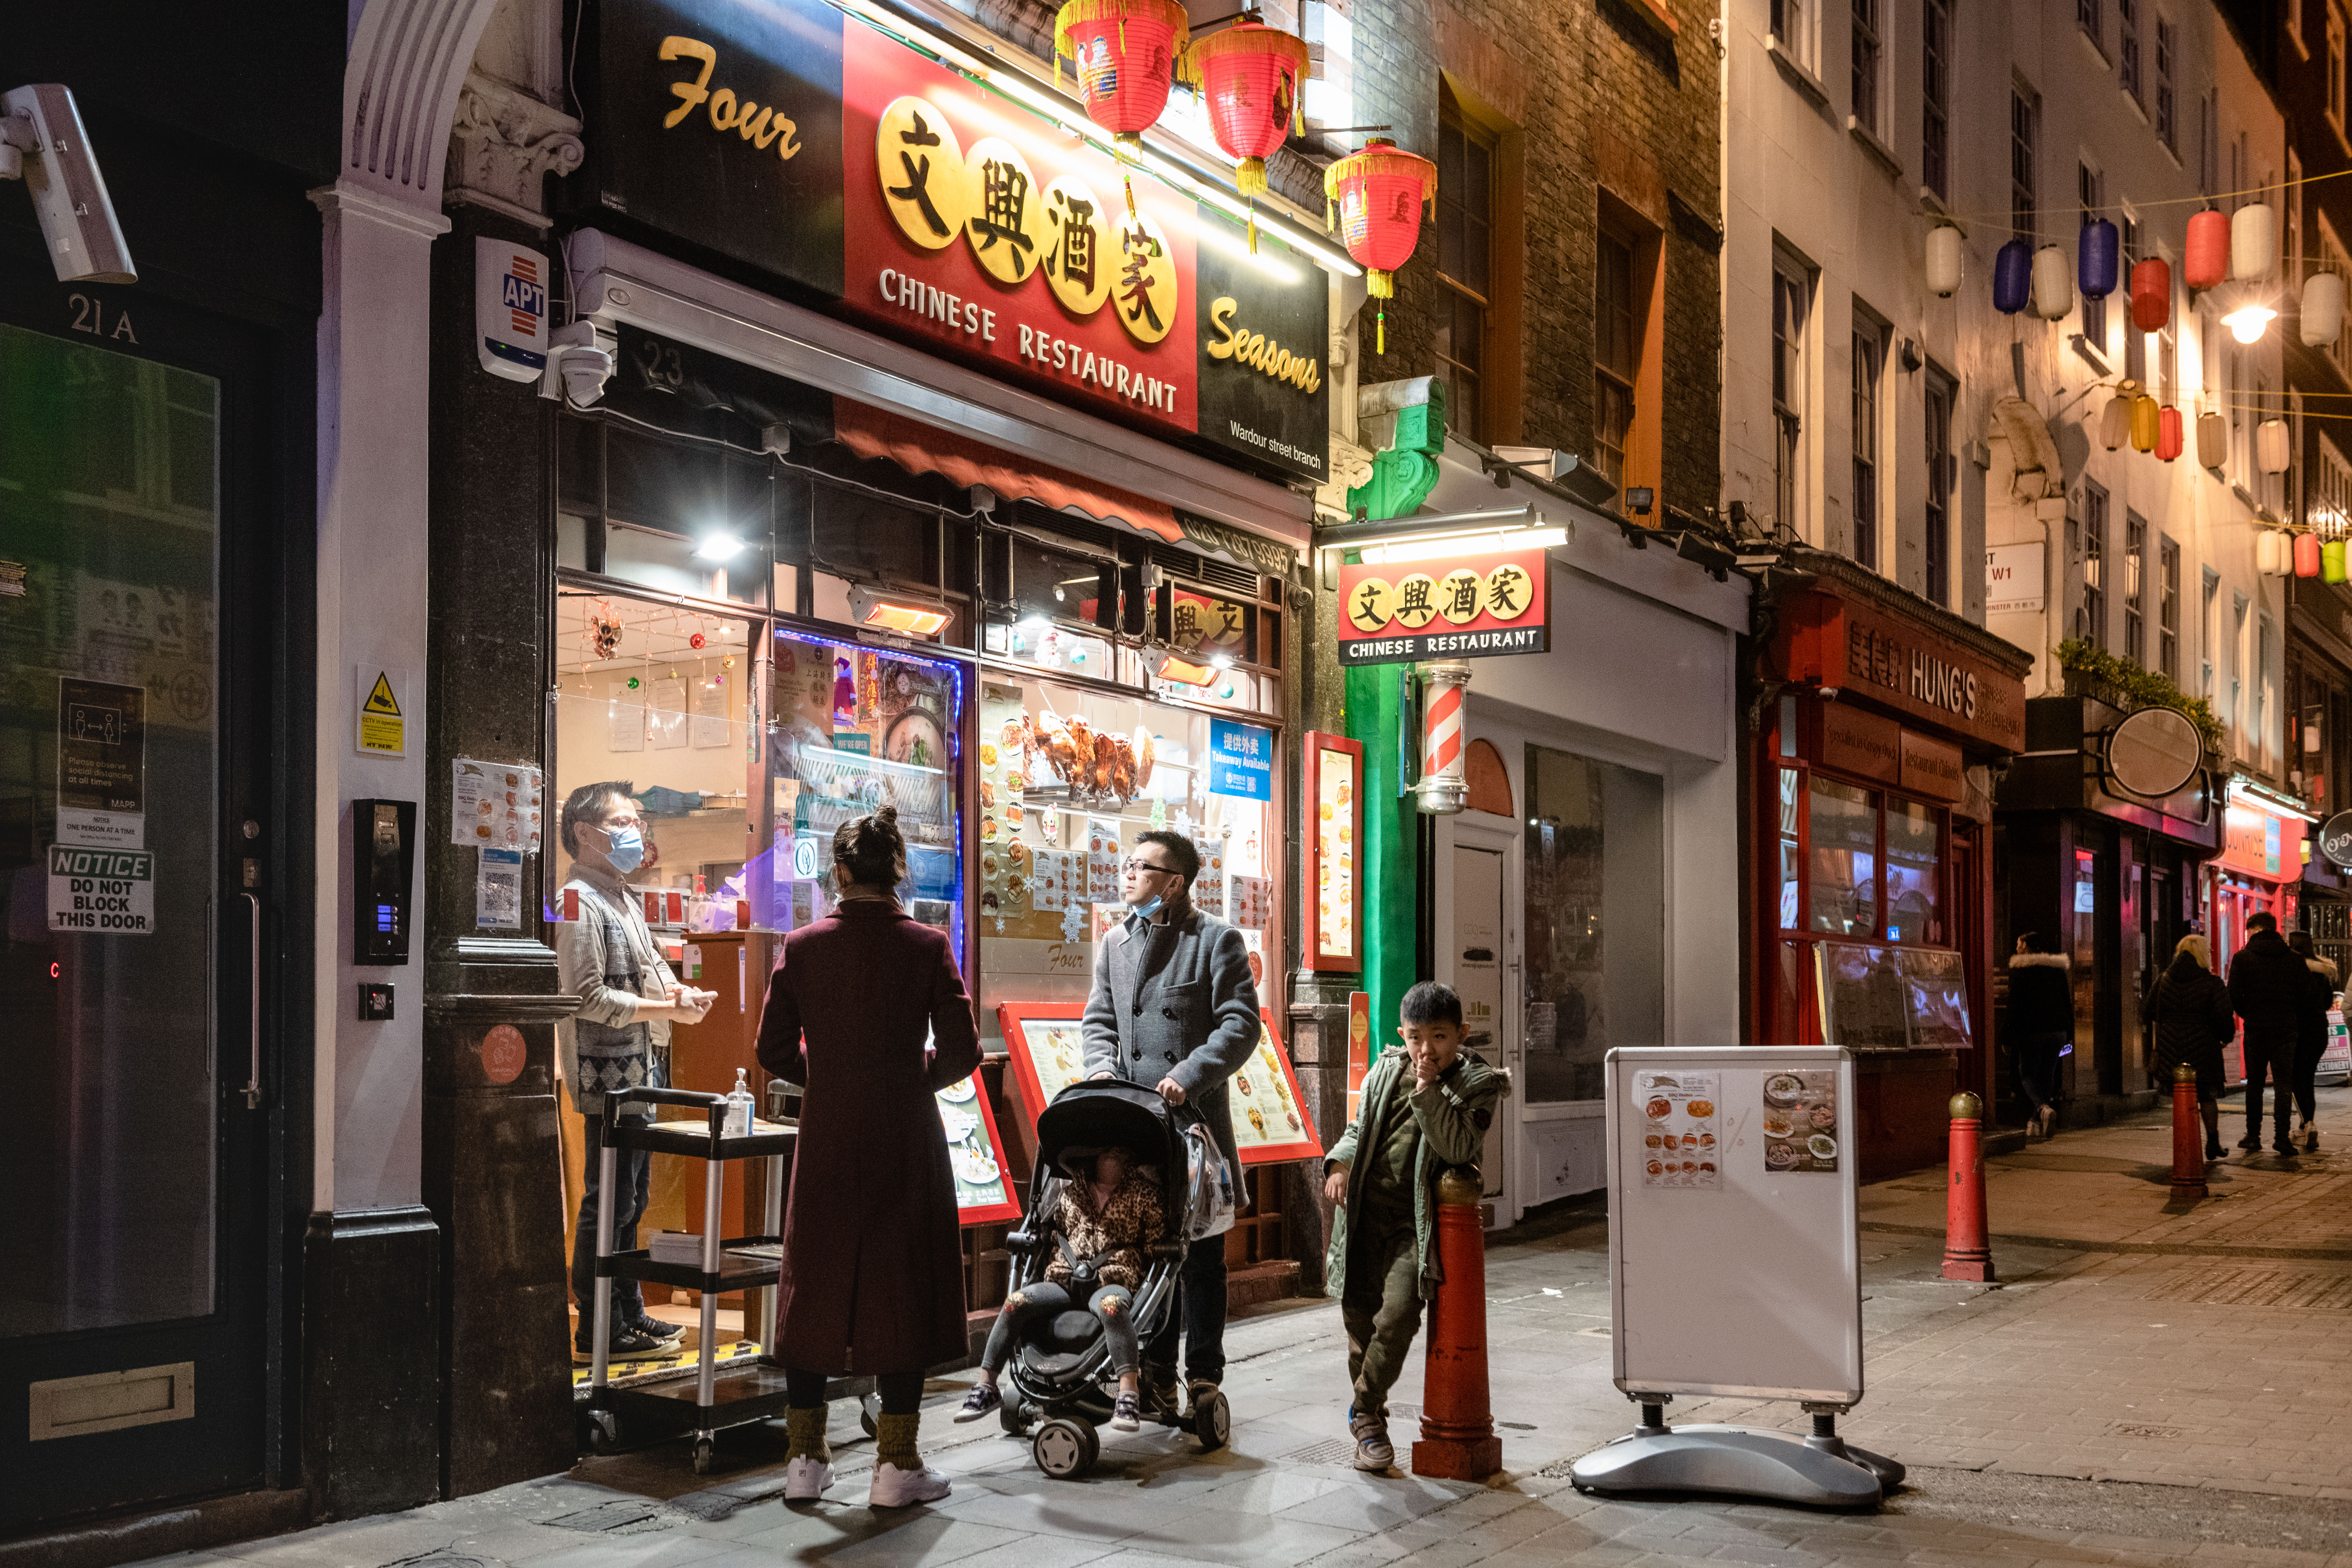 LONDON, ENGLAND - DECEMBER 20:  People order takeout at restaurants in Chinatown on December 20, 2020 in London, England.  London and the South East enter a 'Tier 4' lockdown as a new coronavirus strain is detected in the lead up to Christmas. (Photo by Joseph Okpako/Getty Images)